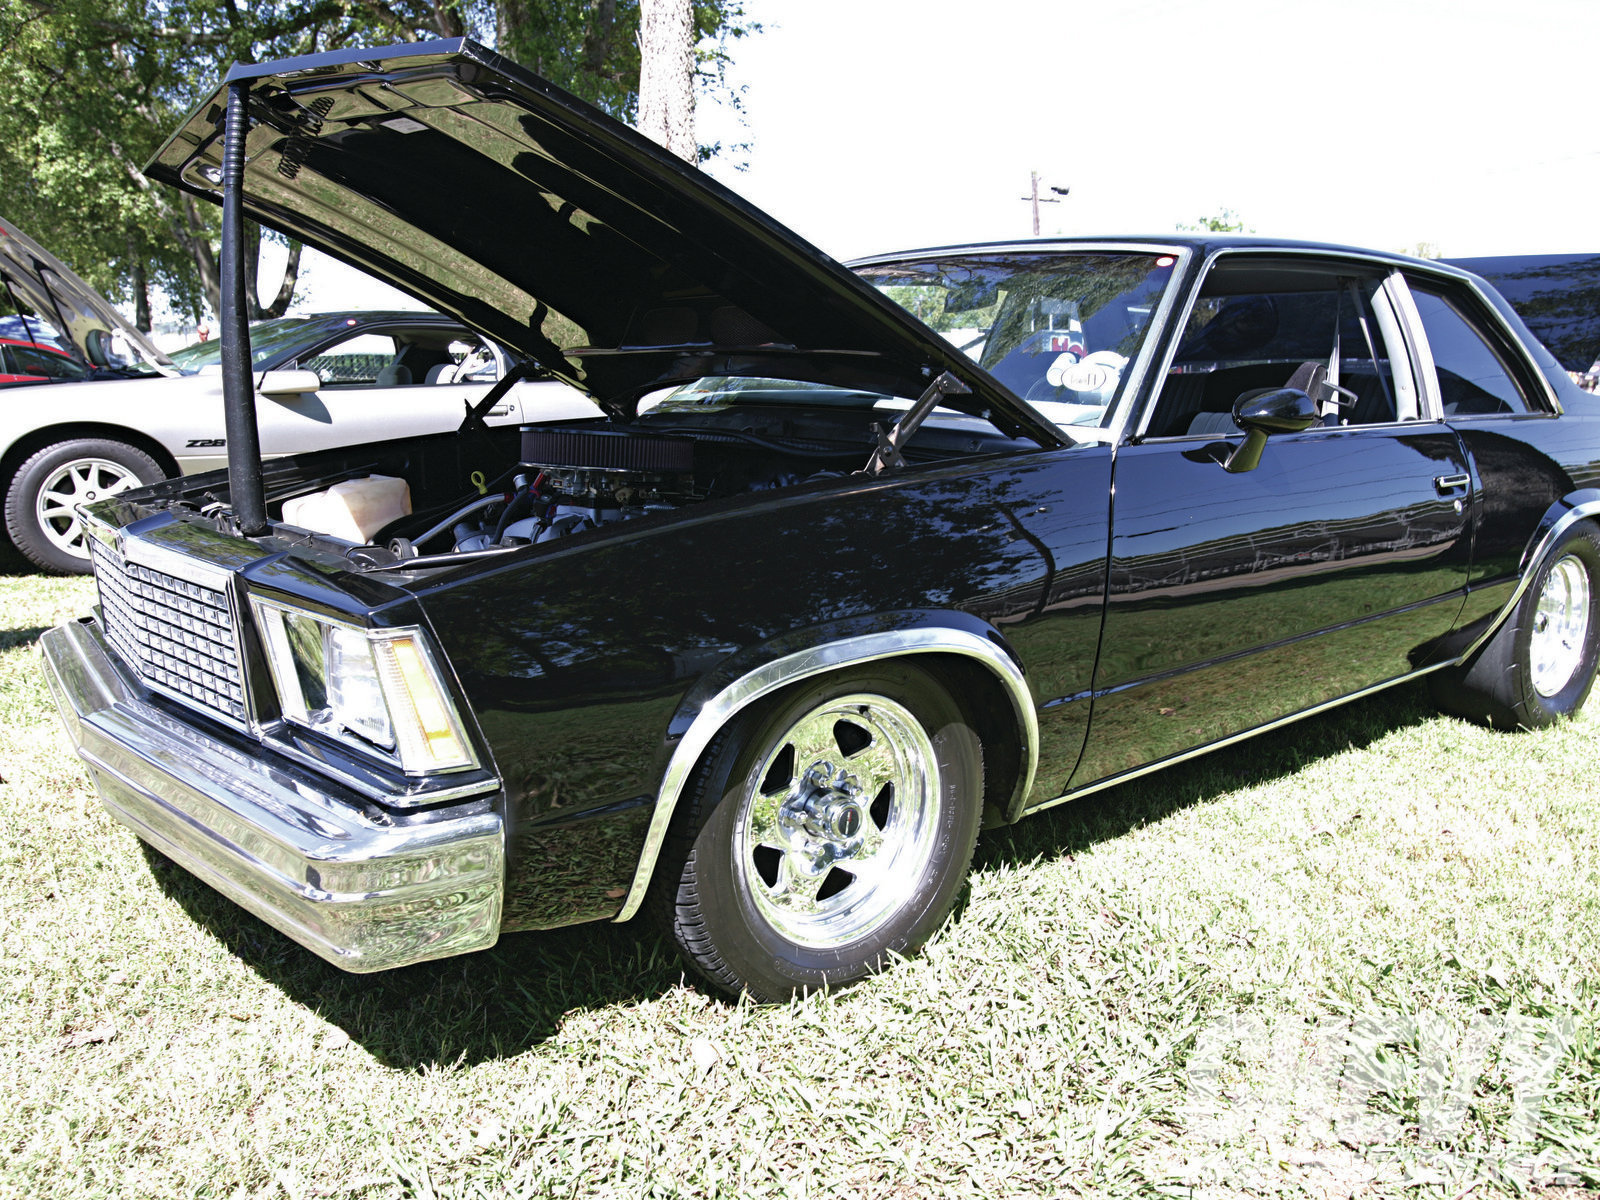 1978 Chevrolet Malibu picture, engine, exterior